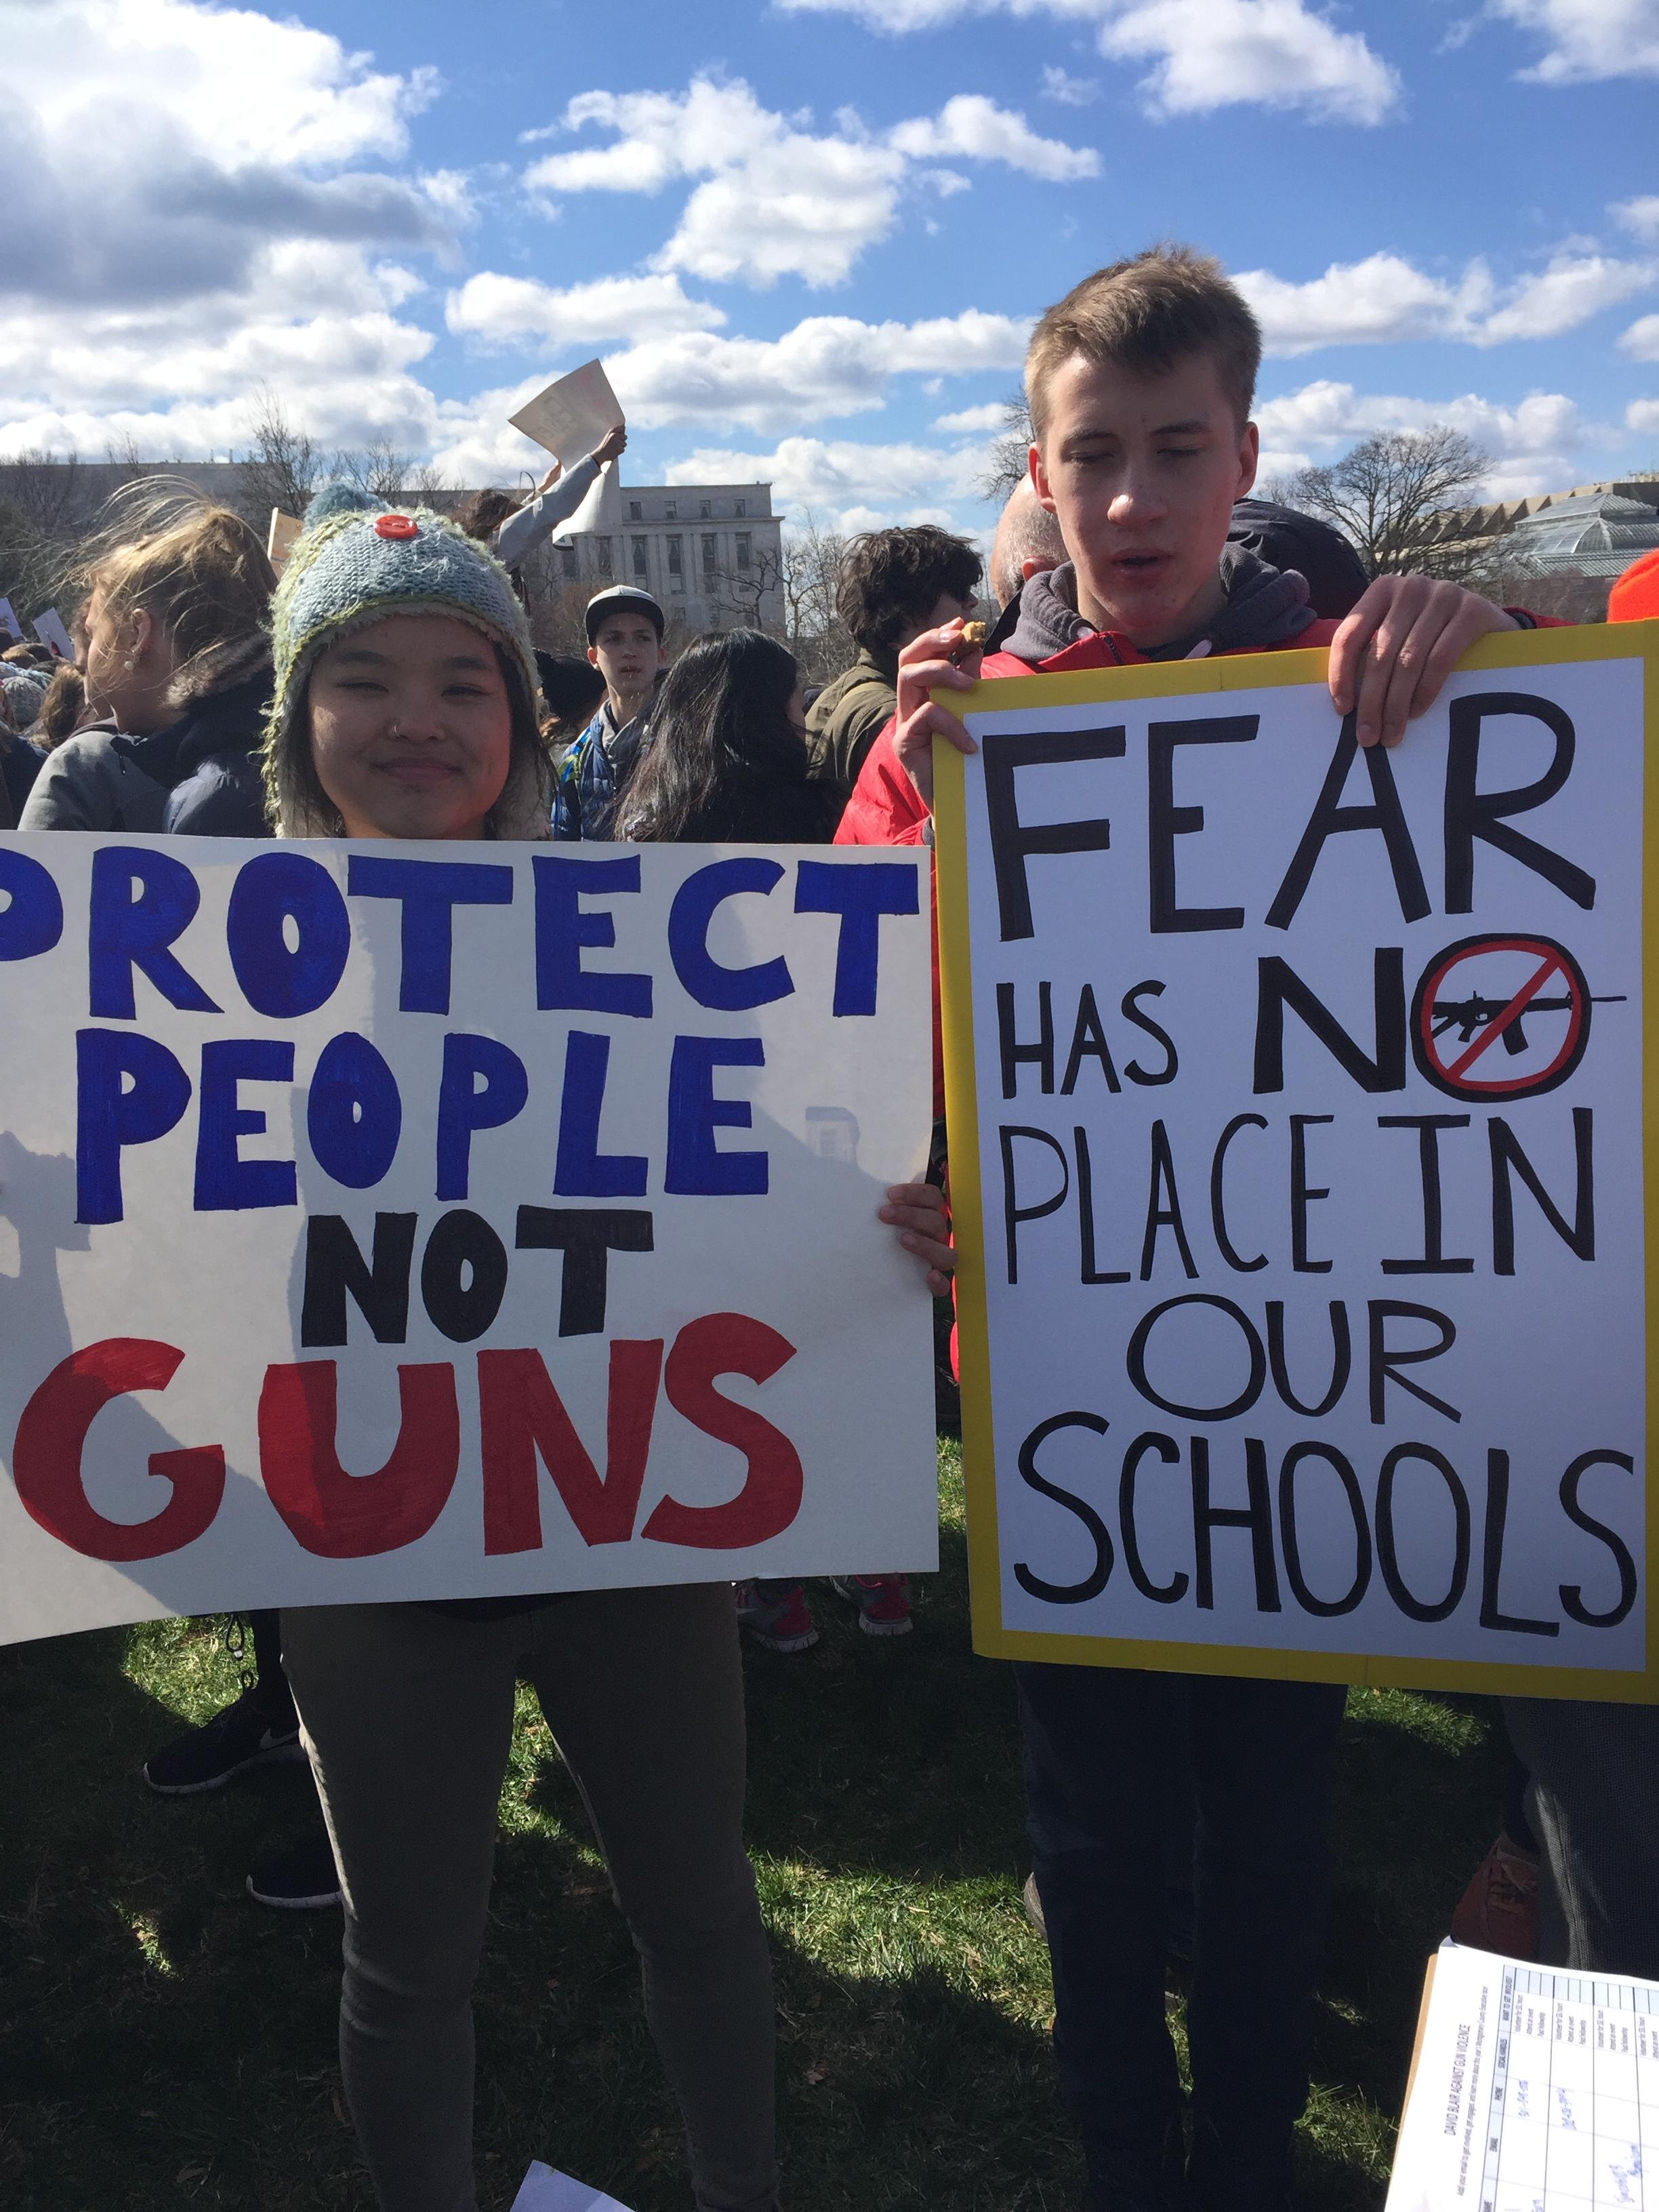 Students demonstrate at the U.S. Capitol during a national school walkout to stop gun violence, Wed., March 14, 2018. (Leandra Bernstein, Sinclair Broadcast Group)